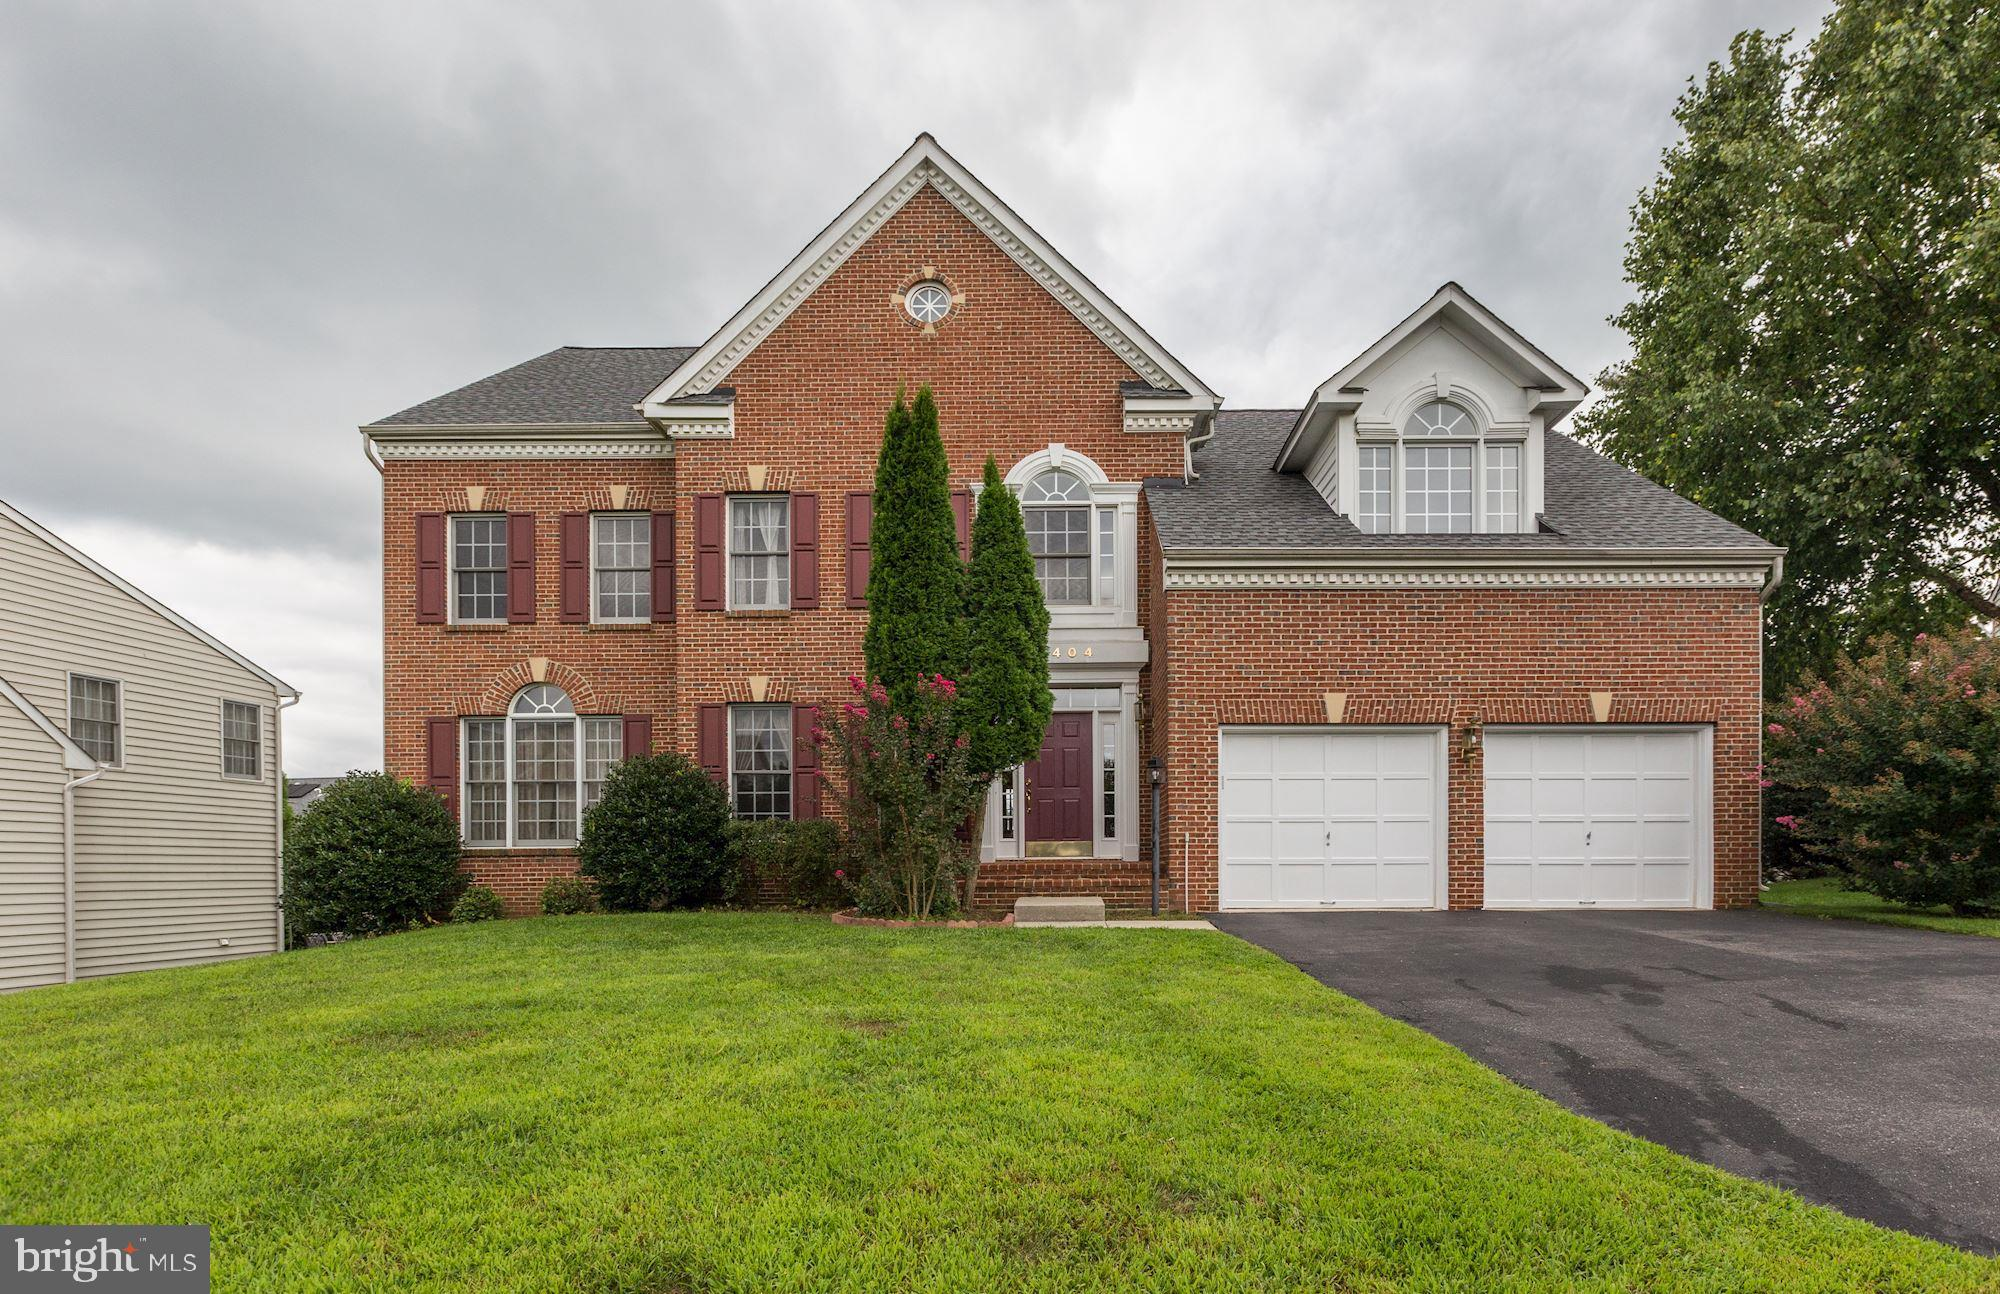 14404 HARVEST MOON ROAD, BOYDS, MD 20841